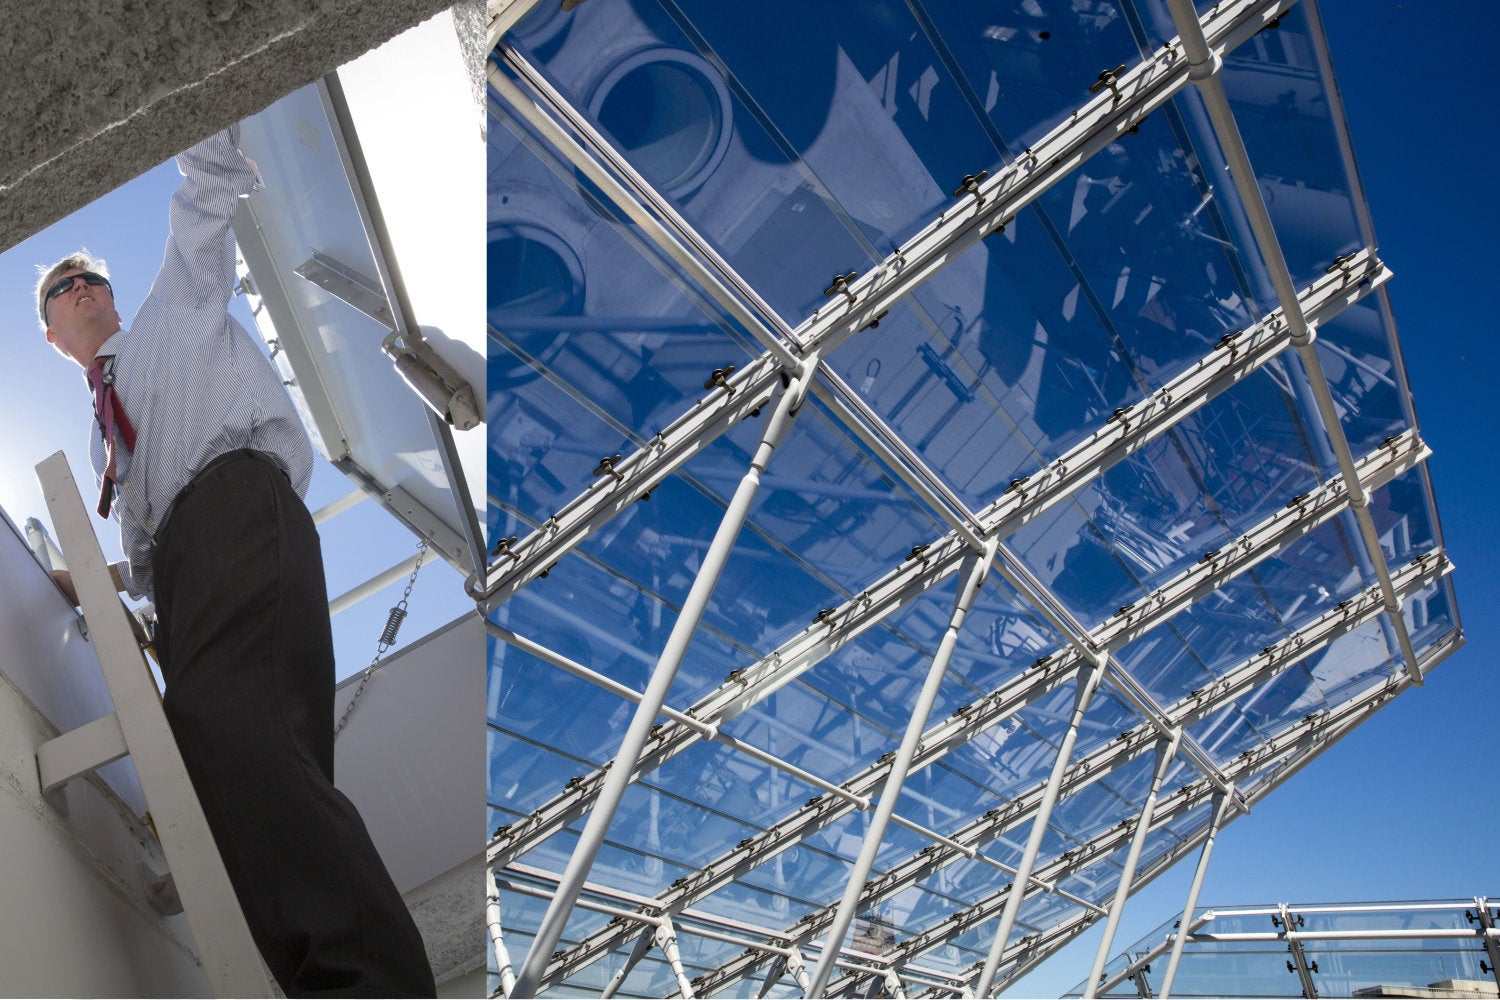 Peter Atkinson, director of facilities planning and management for the Harvard Art Museums, examines the new rooftop designed by architect Renzo Piano. Jon Chase/Harvard Staff Photographer